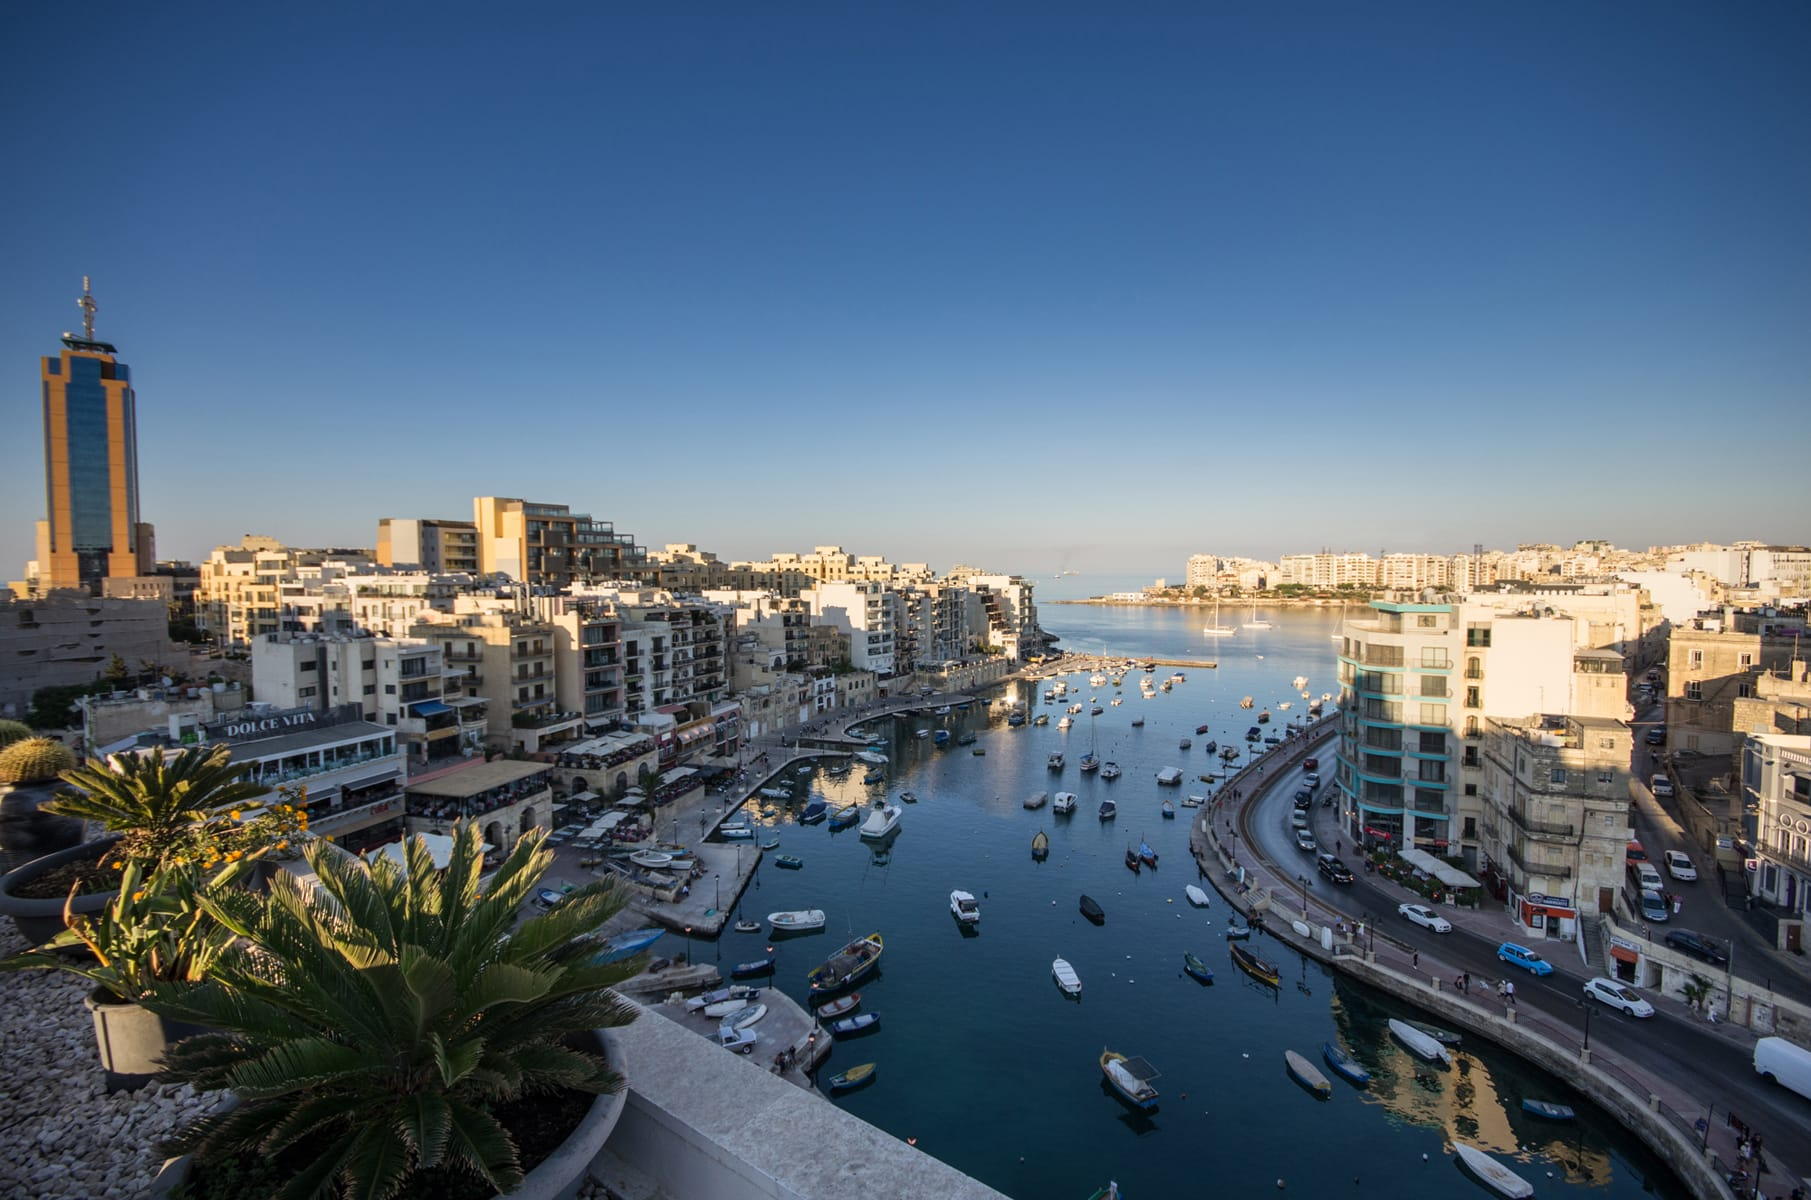 Rooftop views over Spinola Bay in Malta